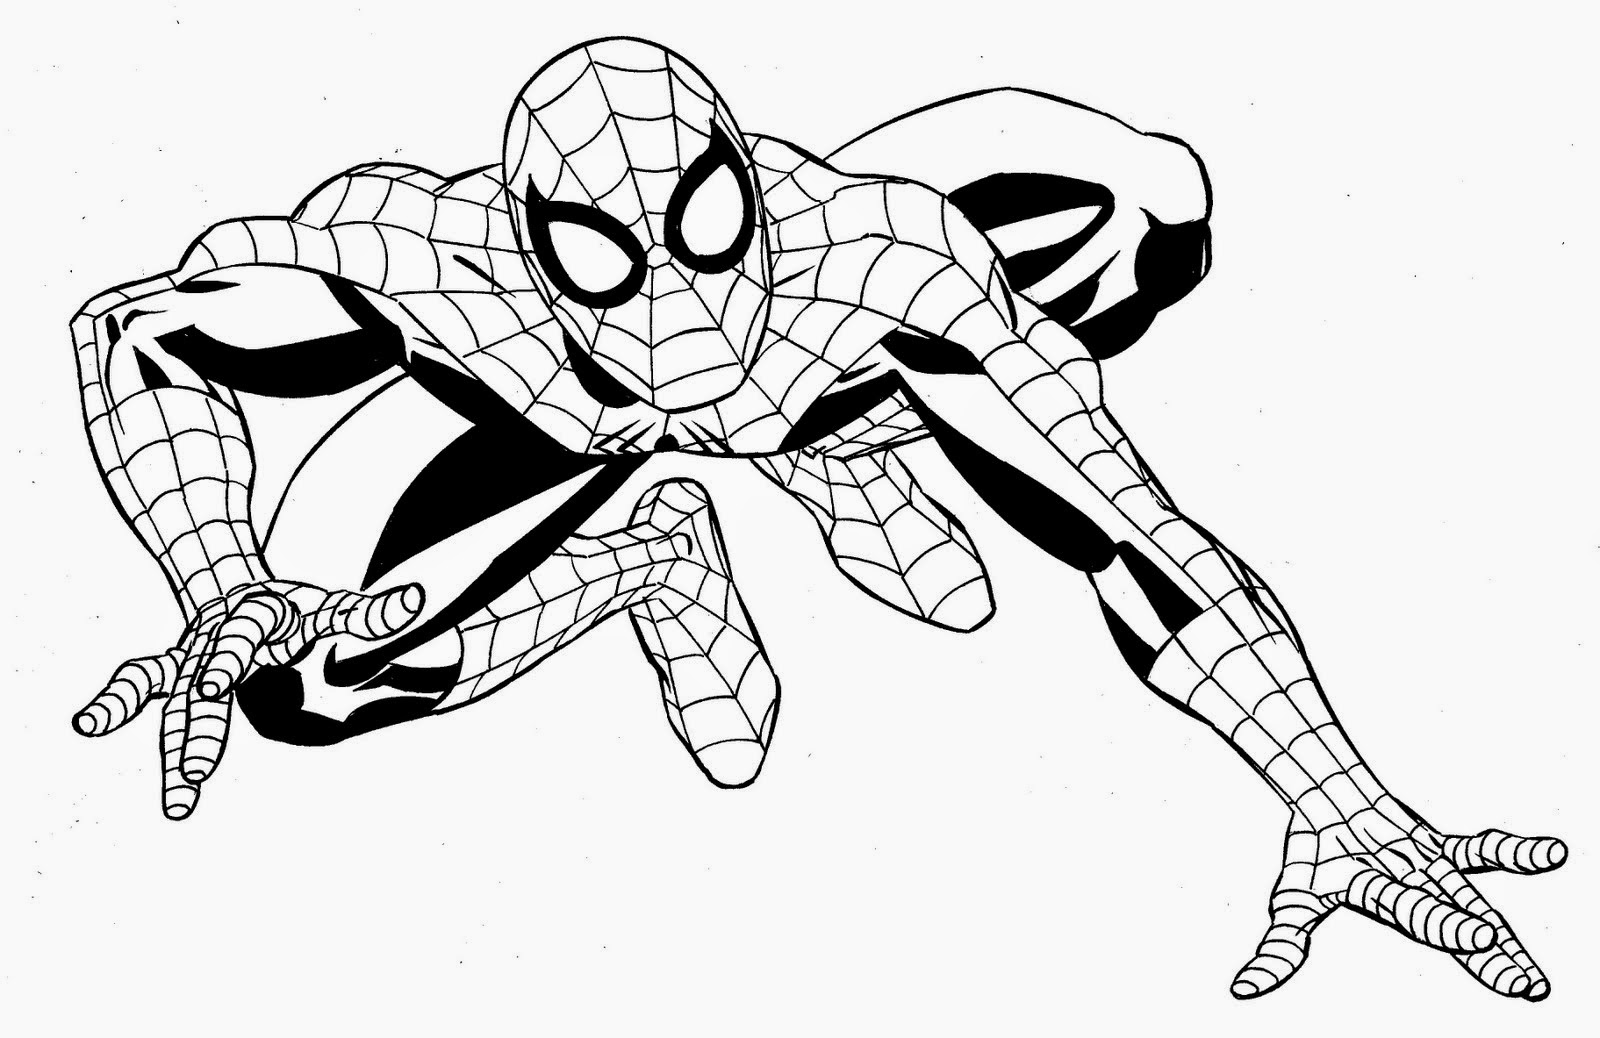 superhero color pages printable superhero coloring pages to download and print for free superhero color printable pages